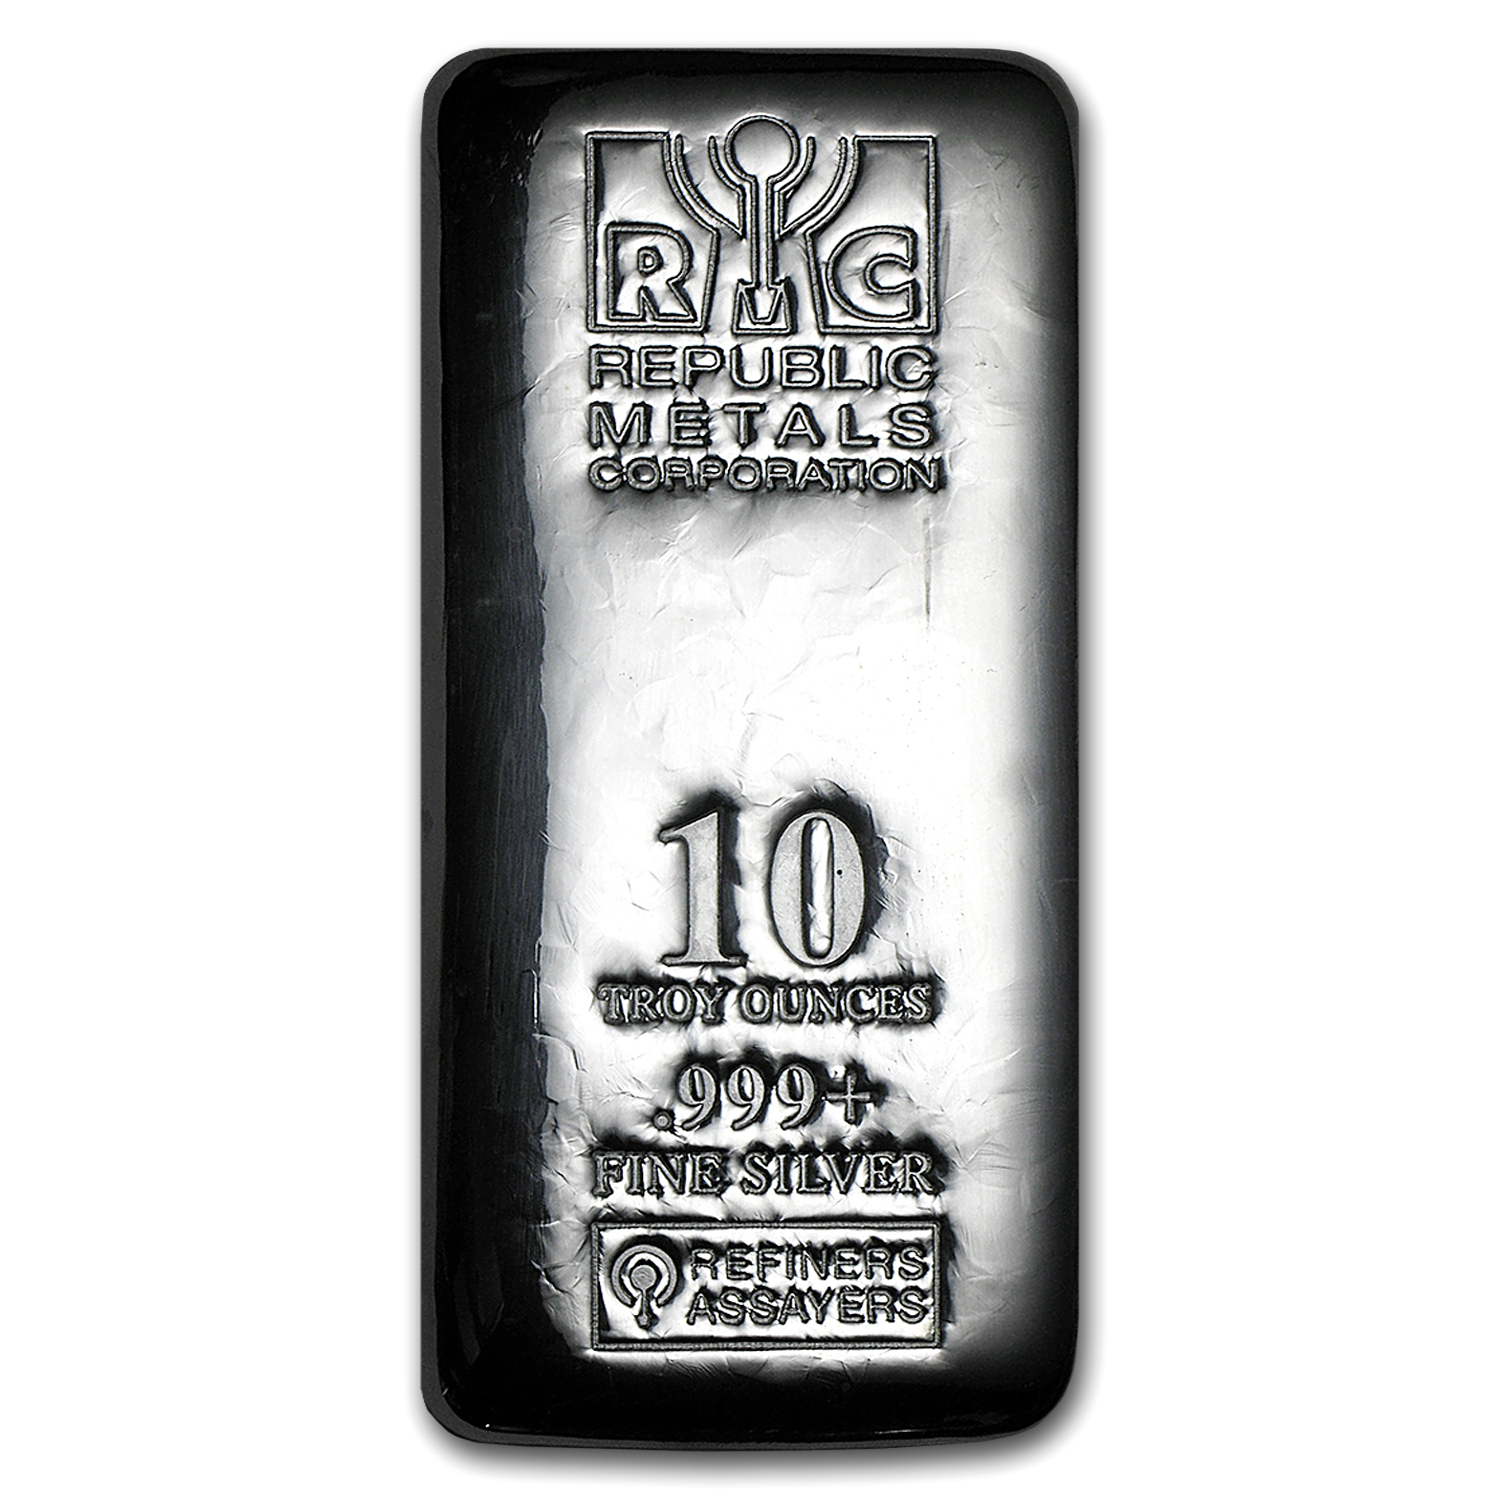 10 oz Silver Bar - Republic Metals Corporation (Cast)